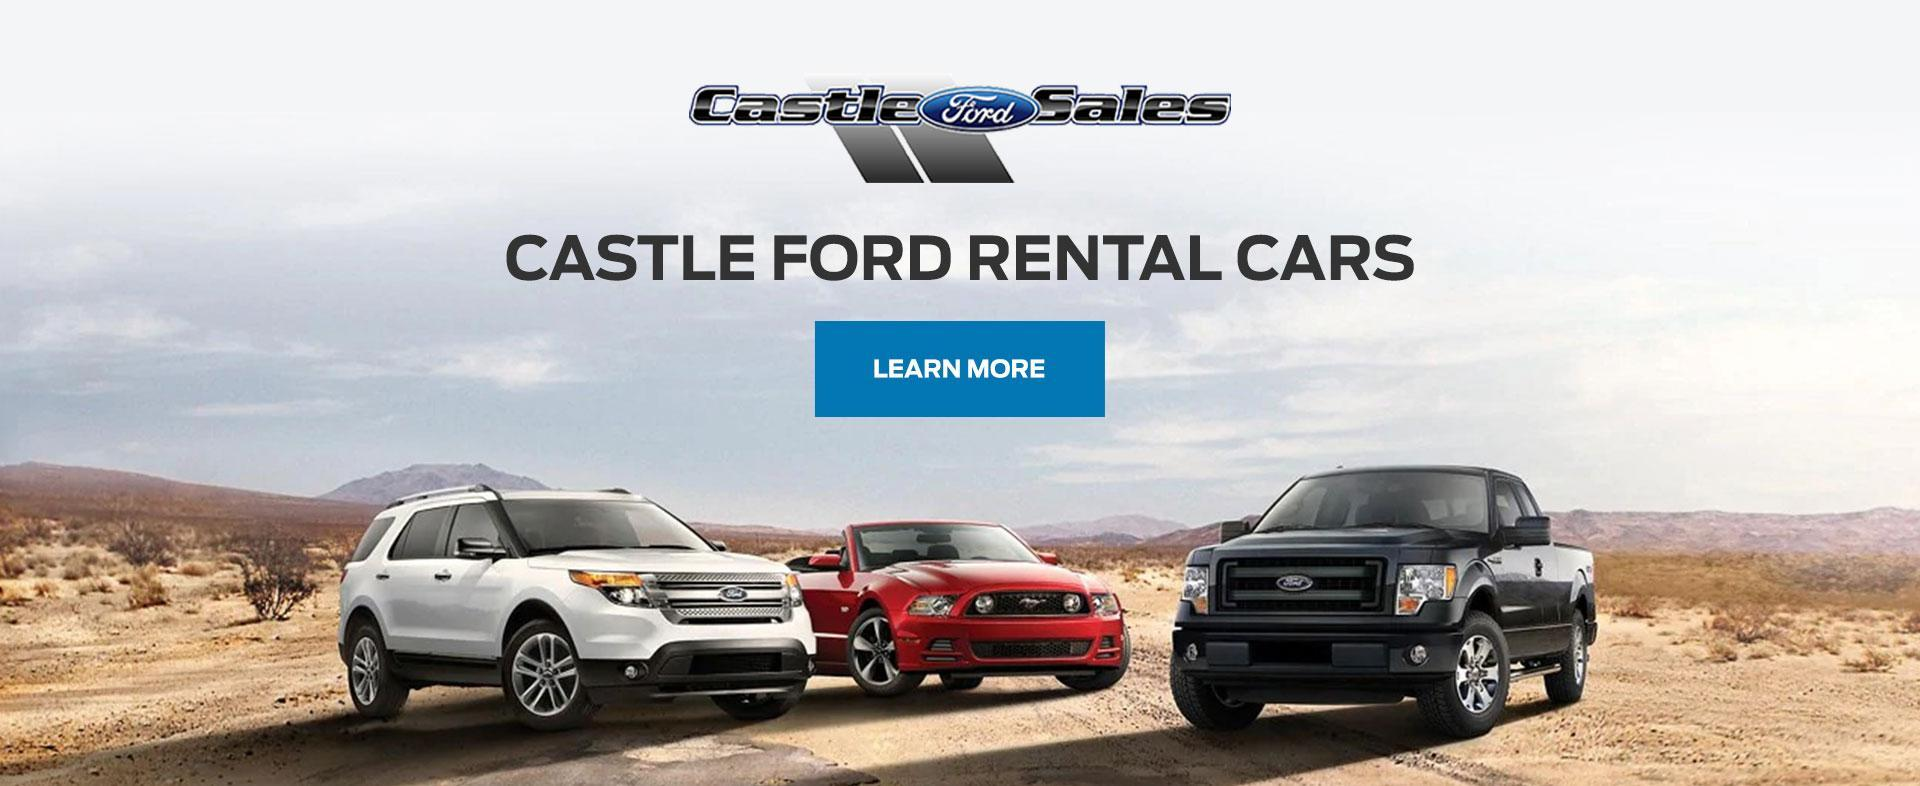 Rental Cars at Castle Ford Sales